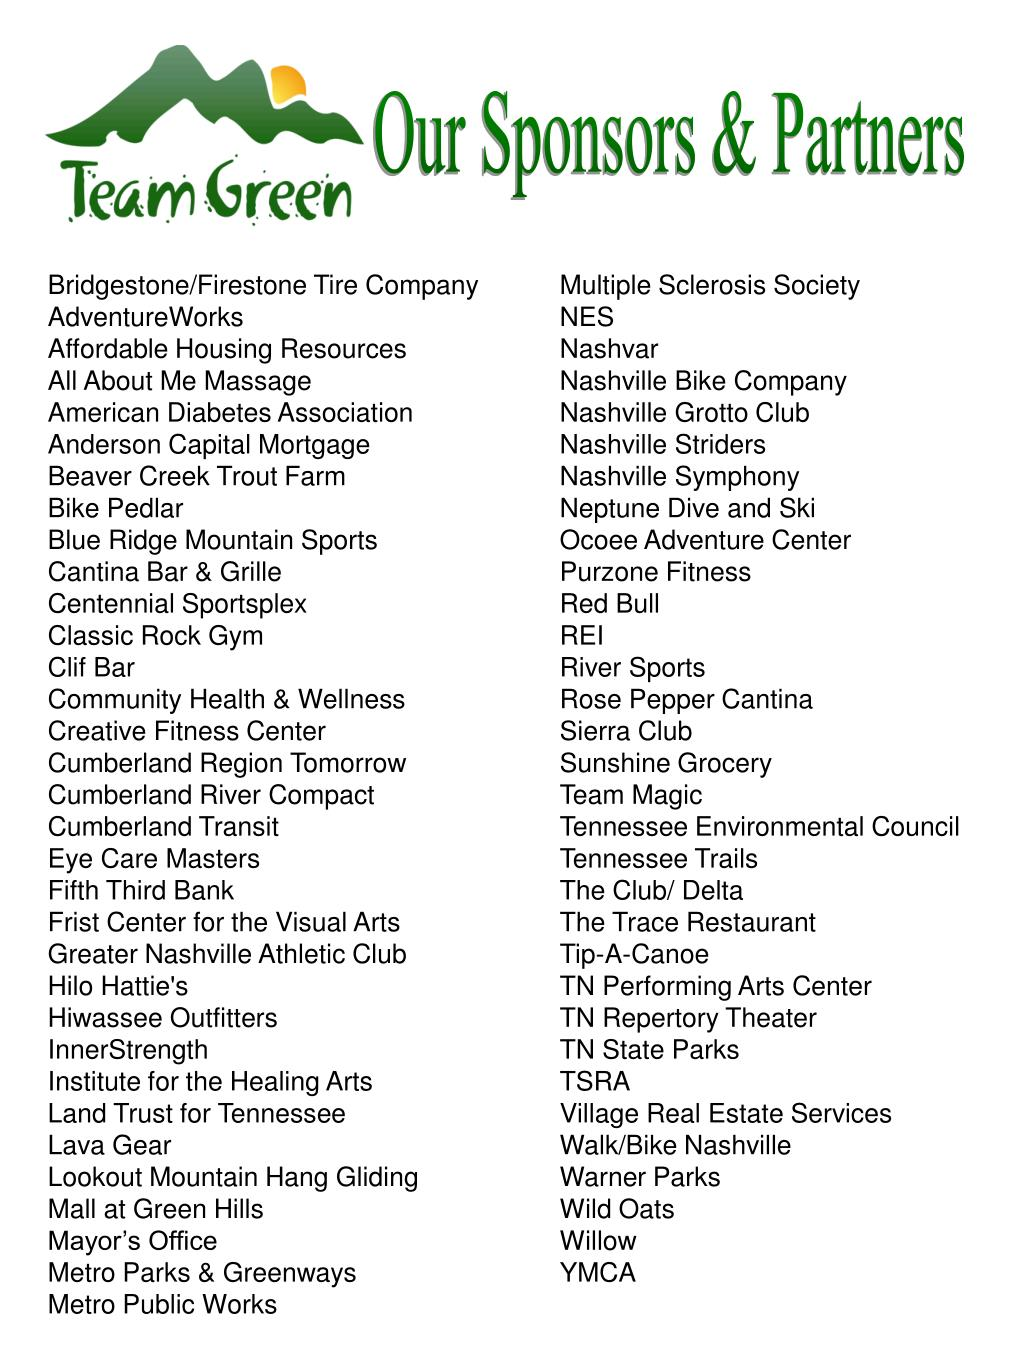 Our Sponsors & Partners